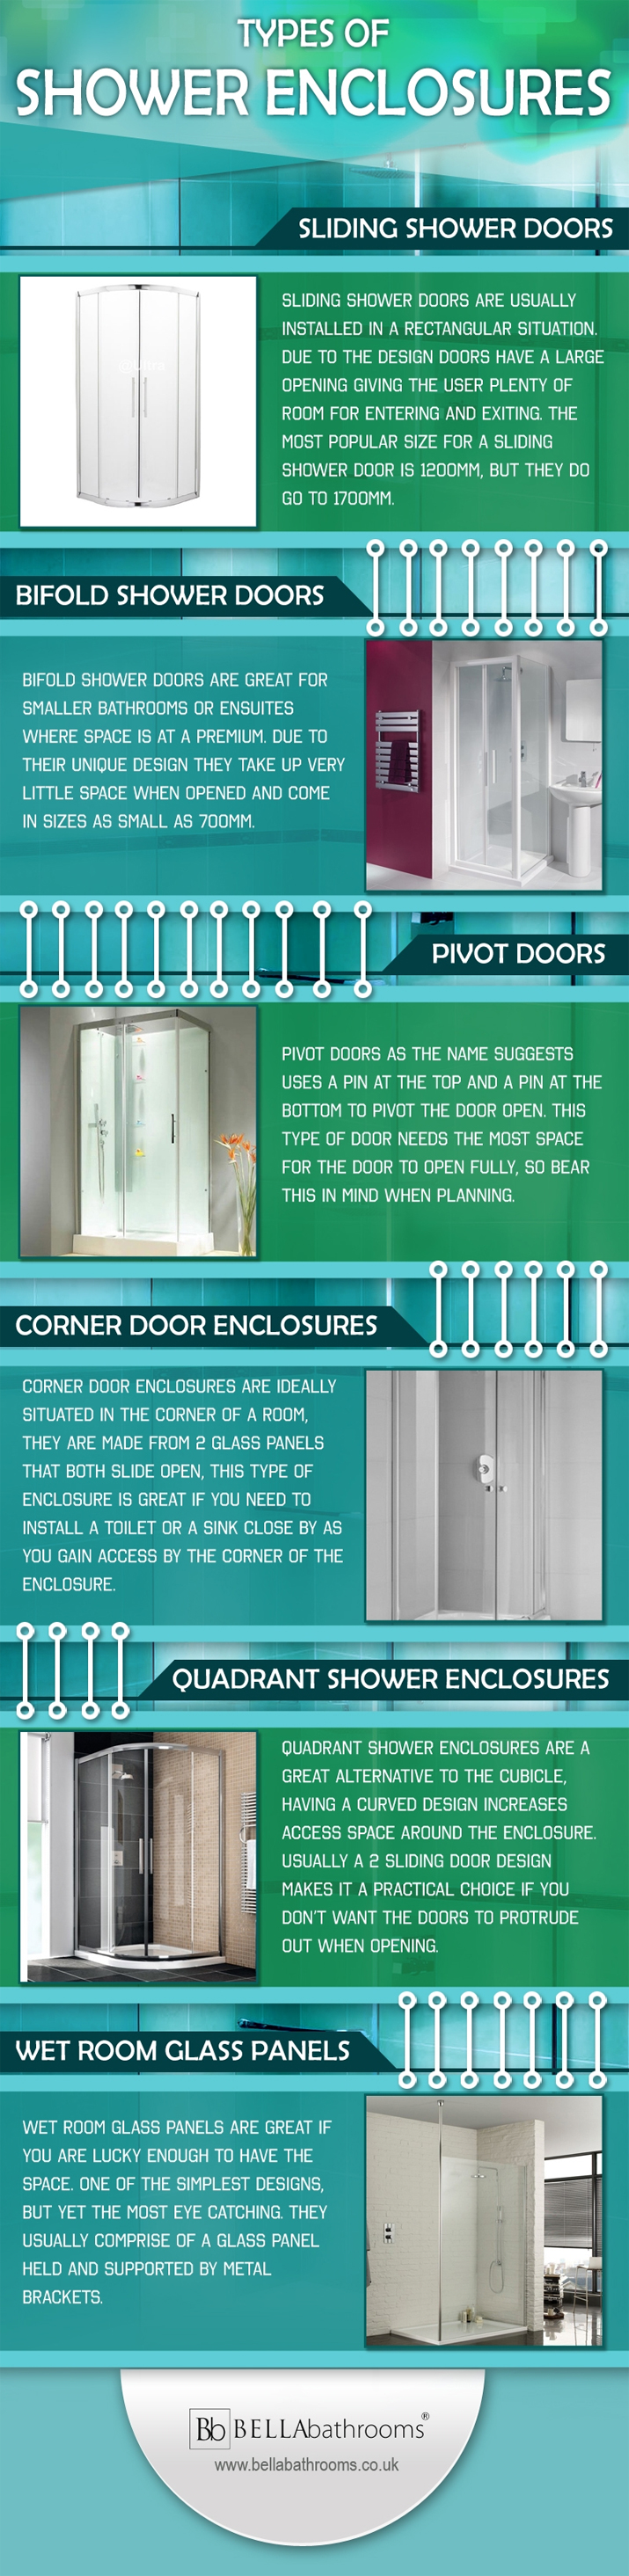 Types of Shower Enclsoures